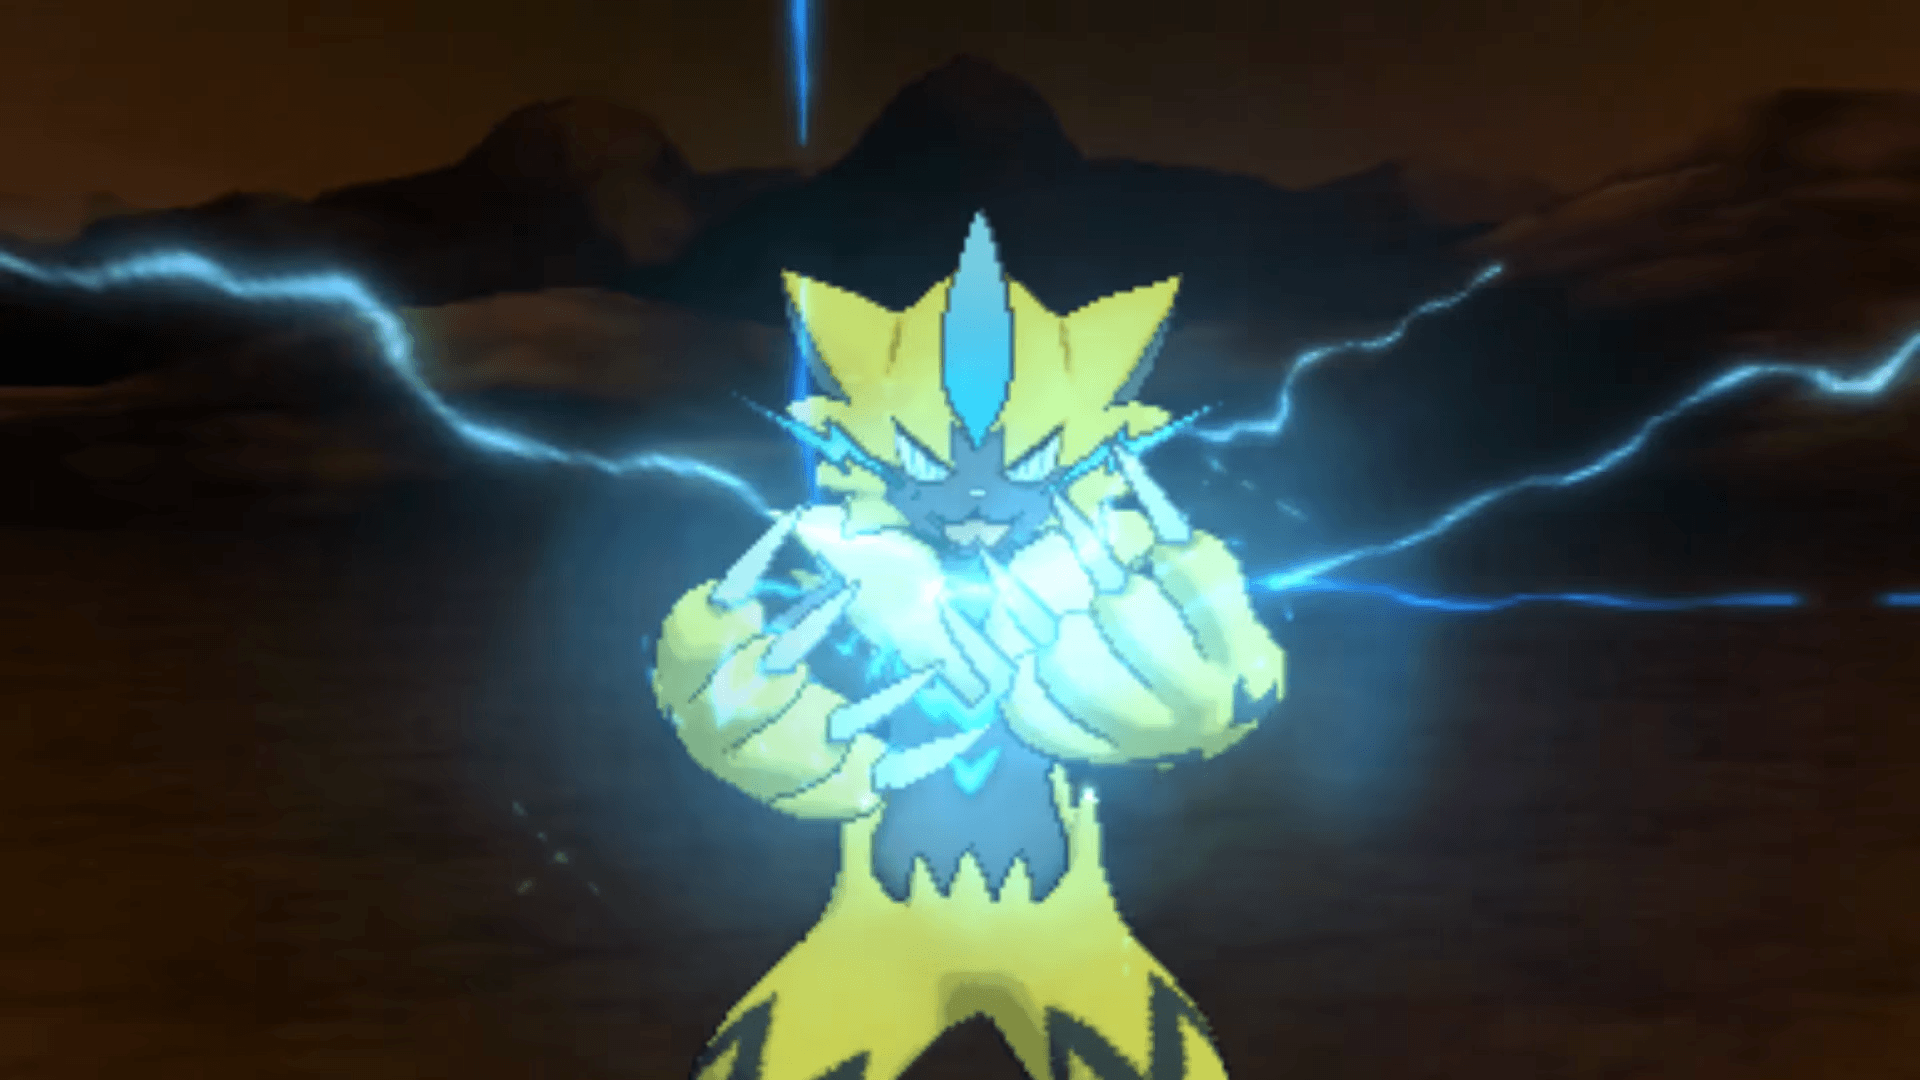 Zeraora Distribution Officially Confirmed for Gamestop! - PokéBeach